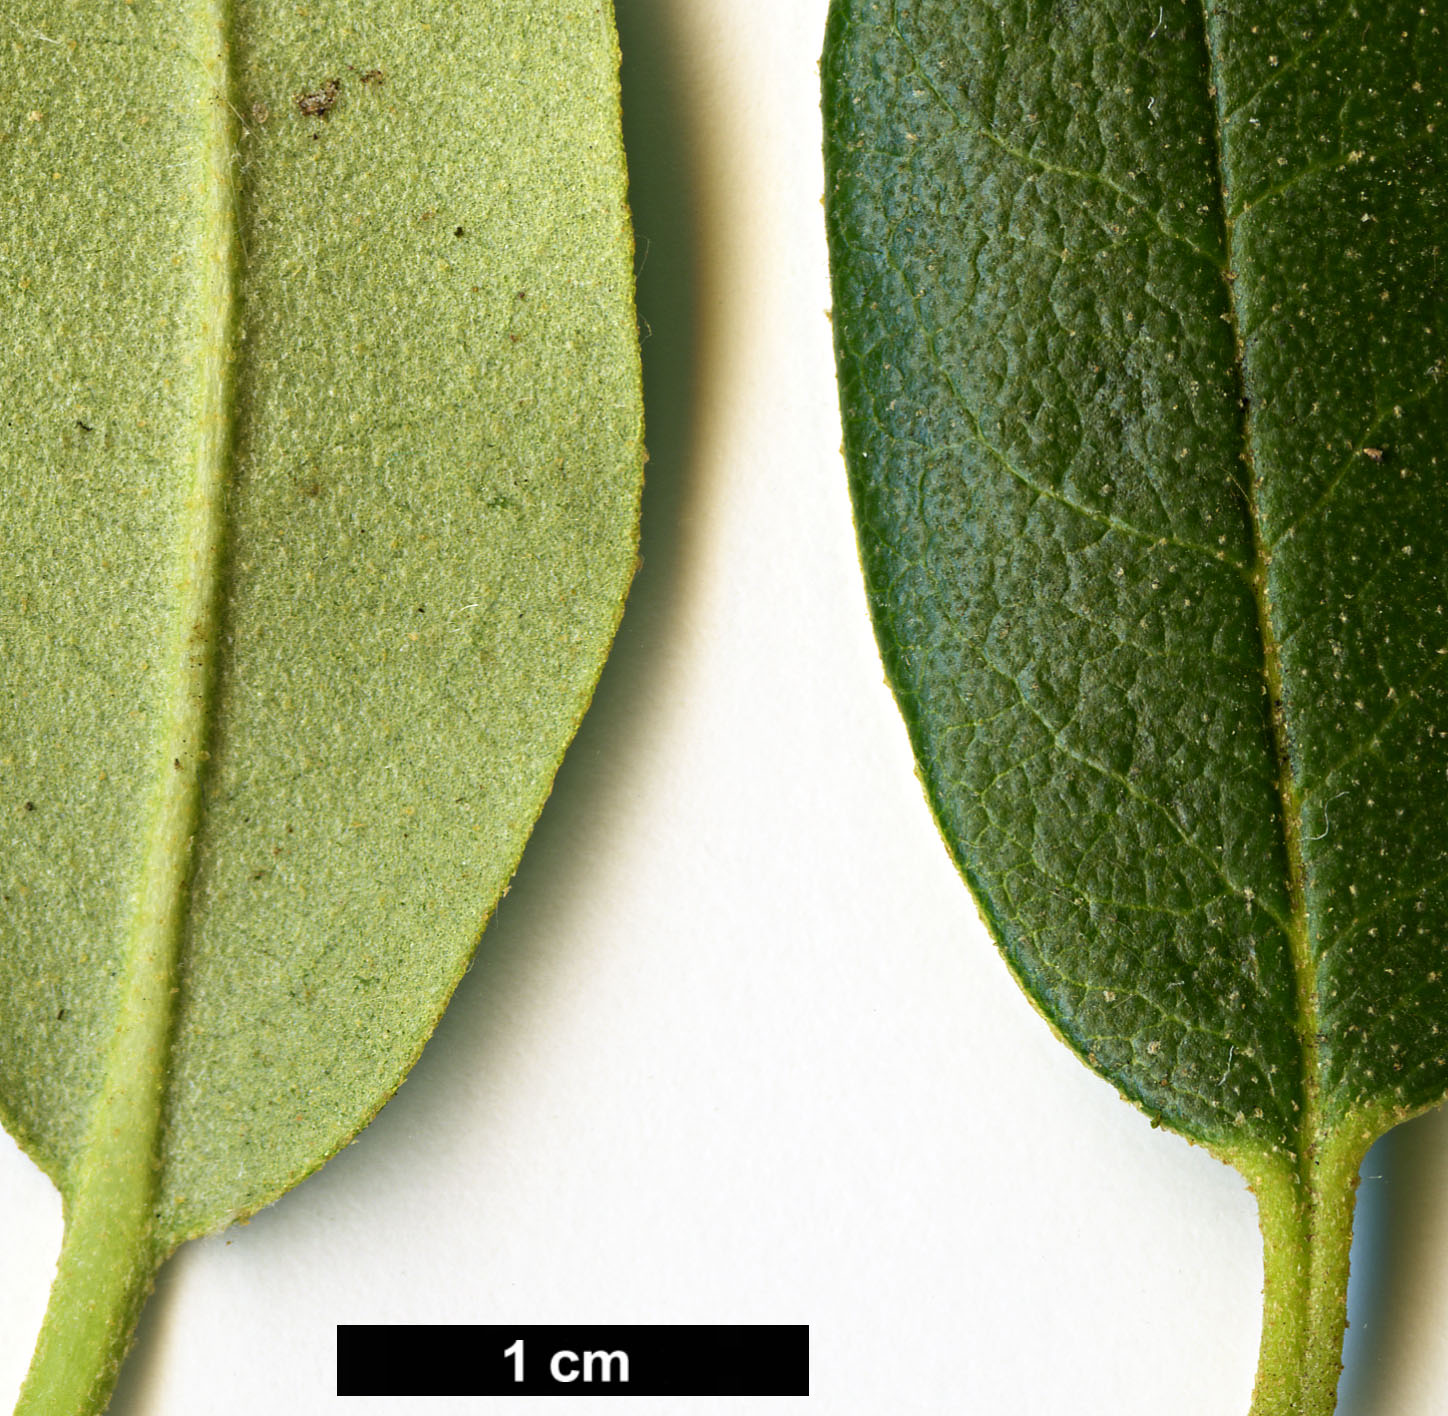 High resolution image: Family: Ericaceae - Genus: Rhododendron - Taxon: collettianum